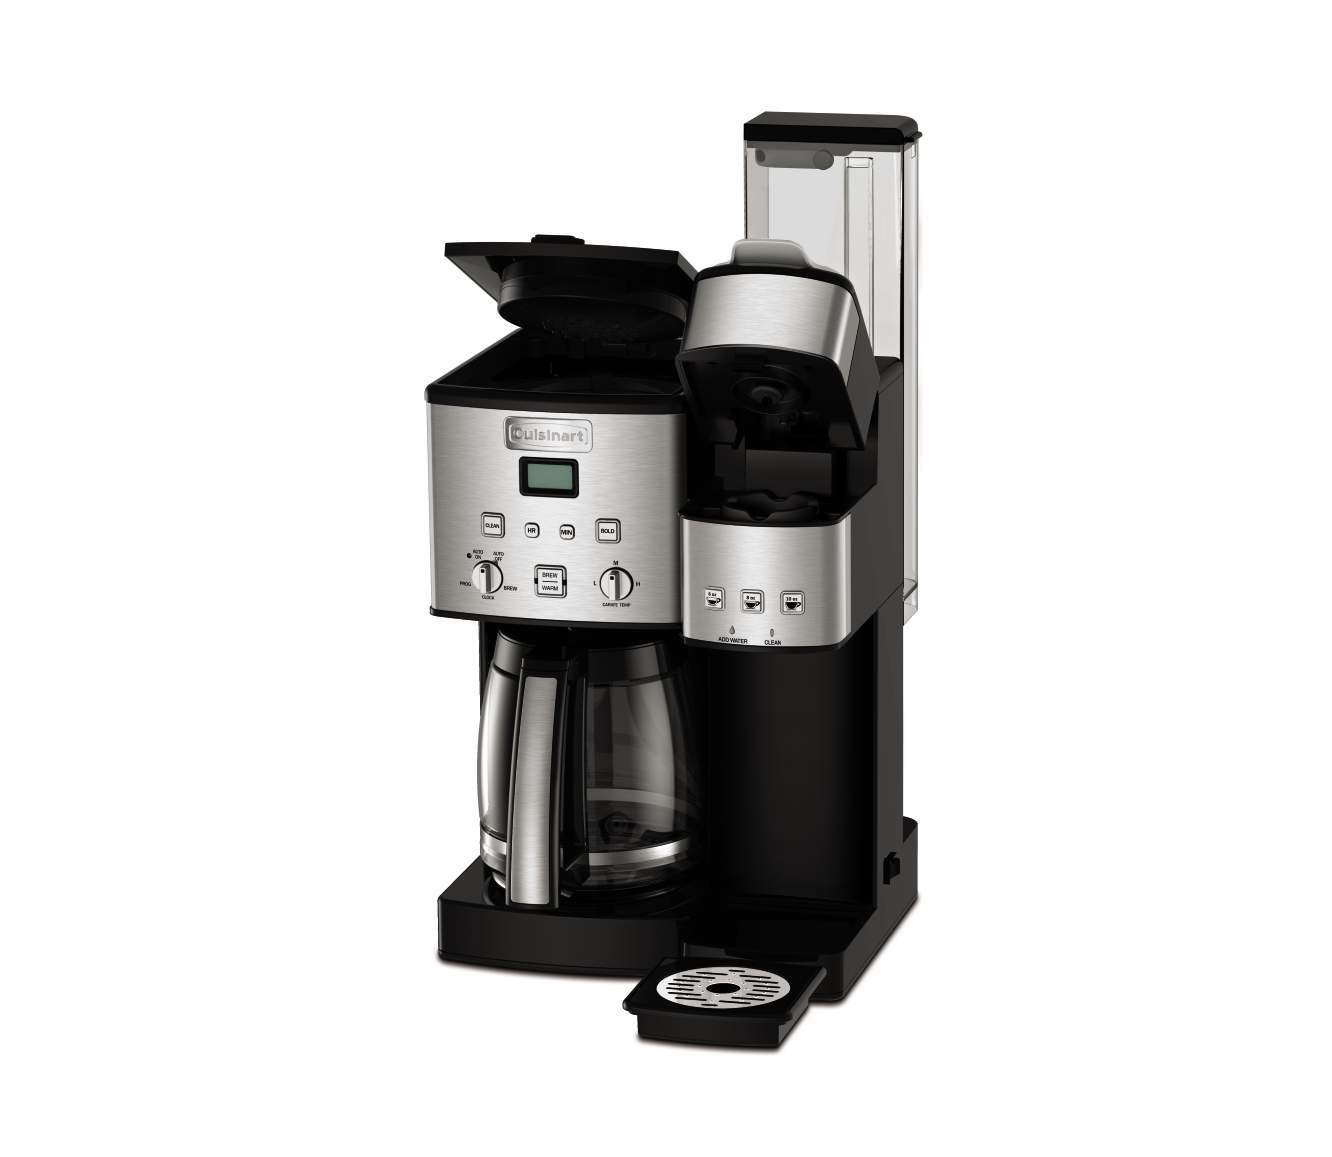 Cuisinart SS-15 12-Cup Coffee Maker and Single-Serve Brewer, Stainless Steel by Cuisinart (Image #3)